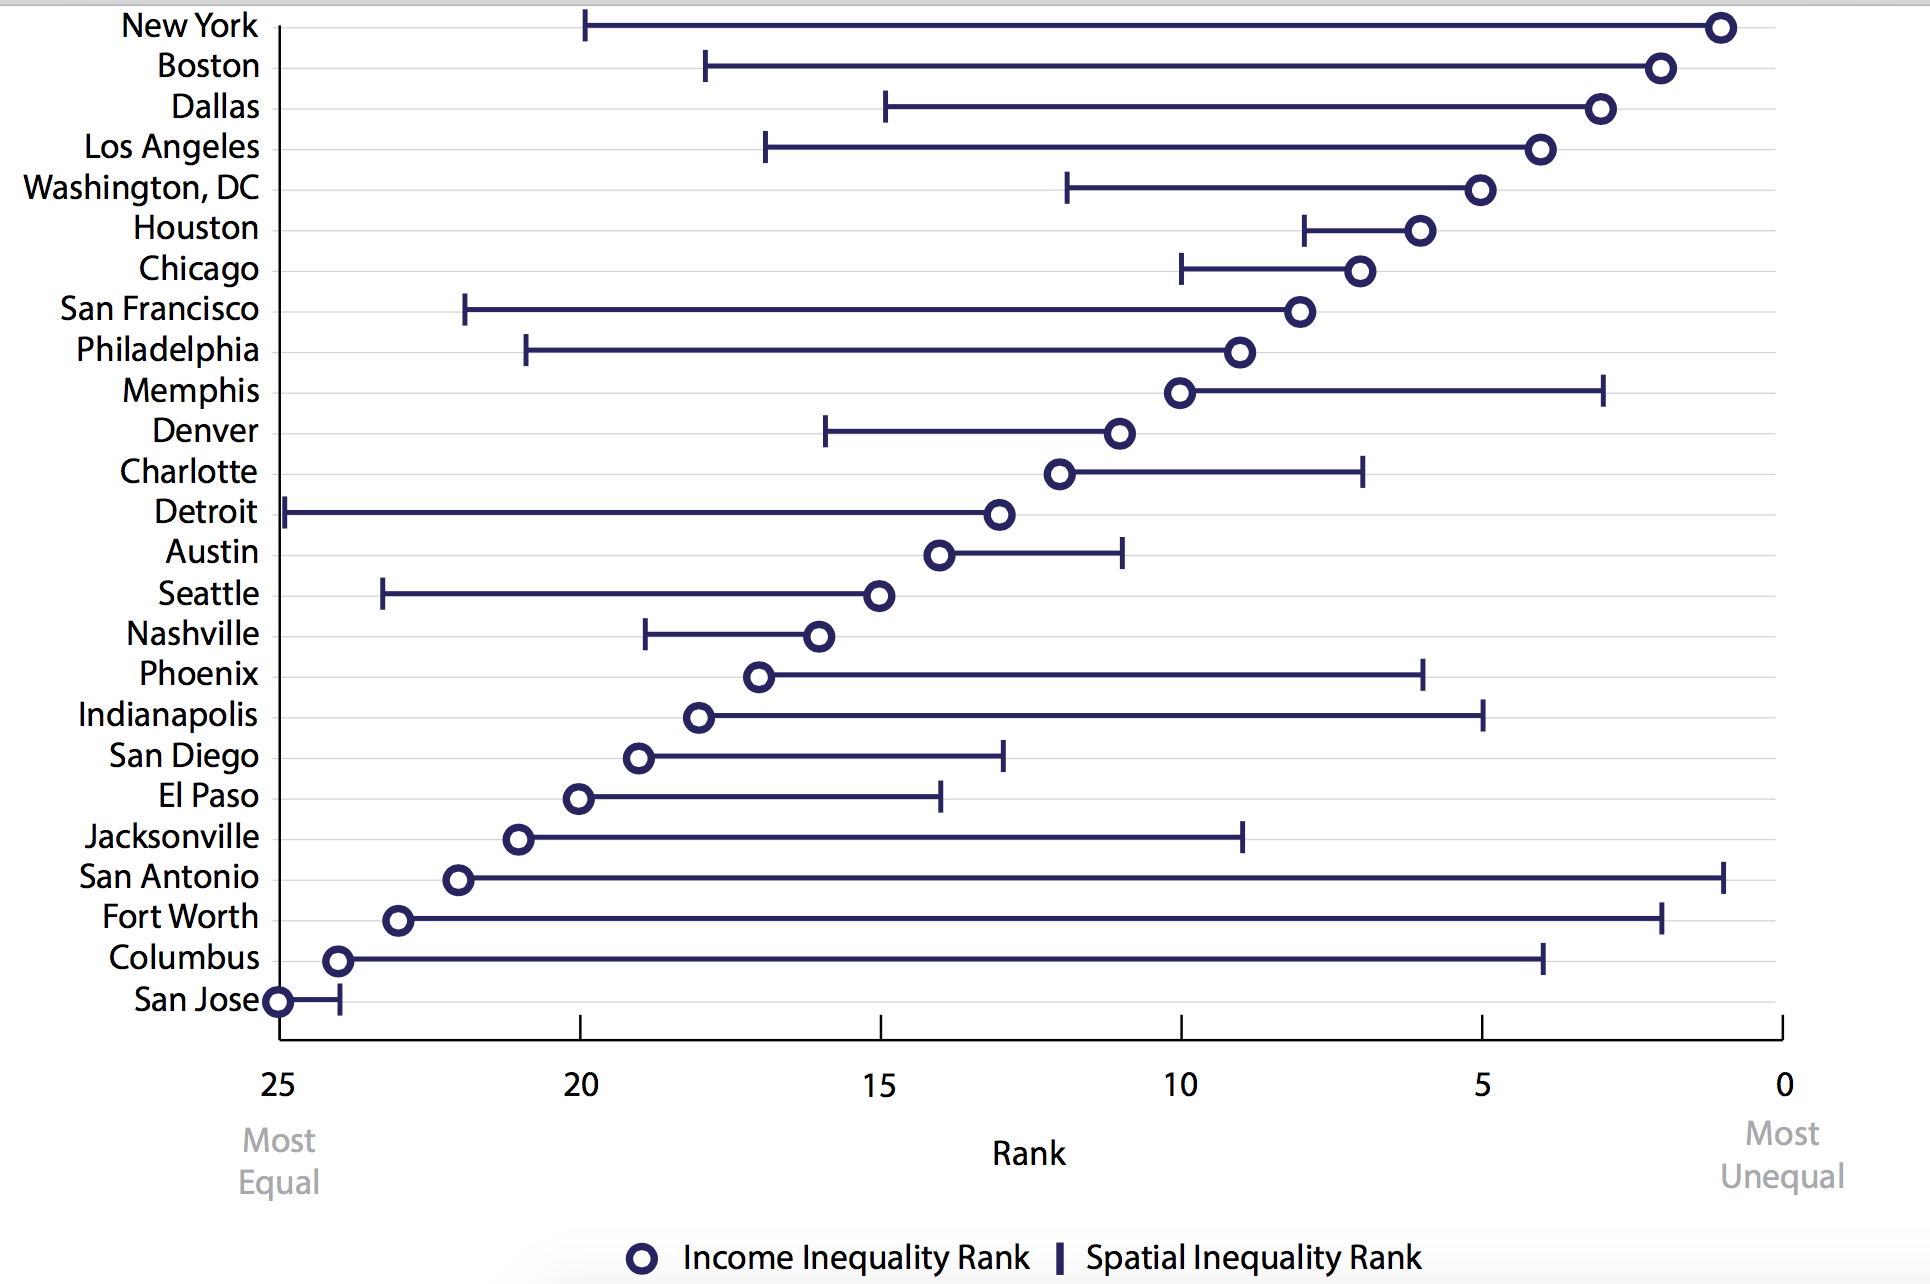 Income inequality in major US cities